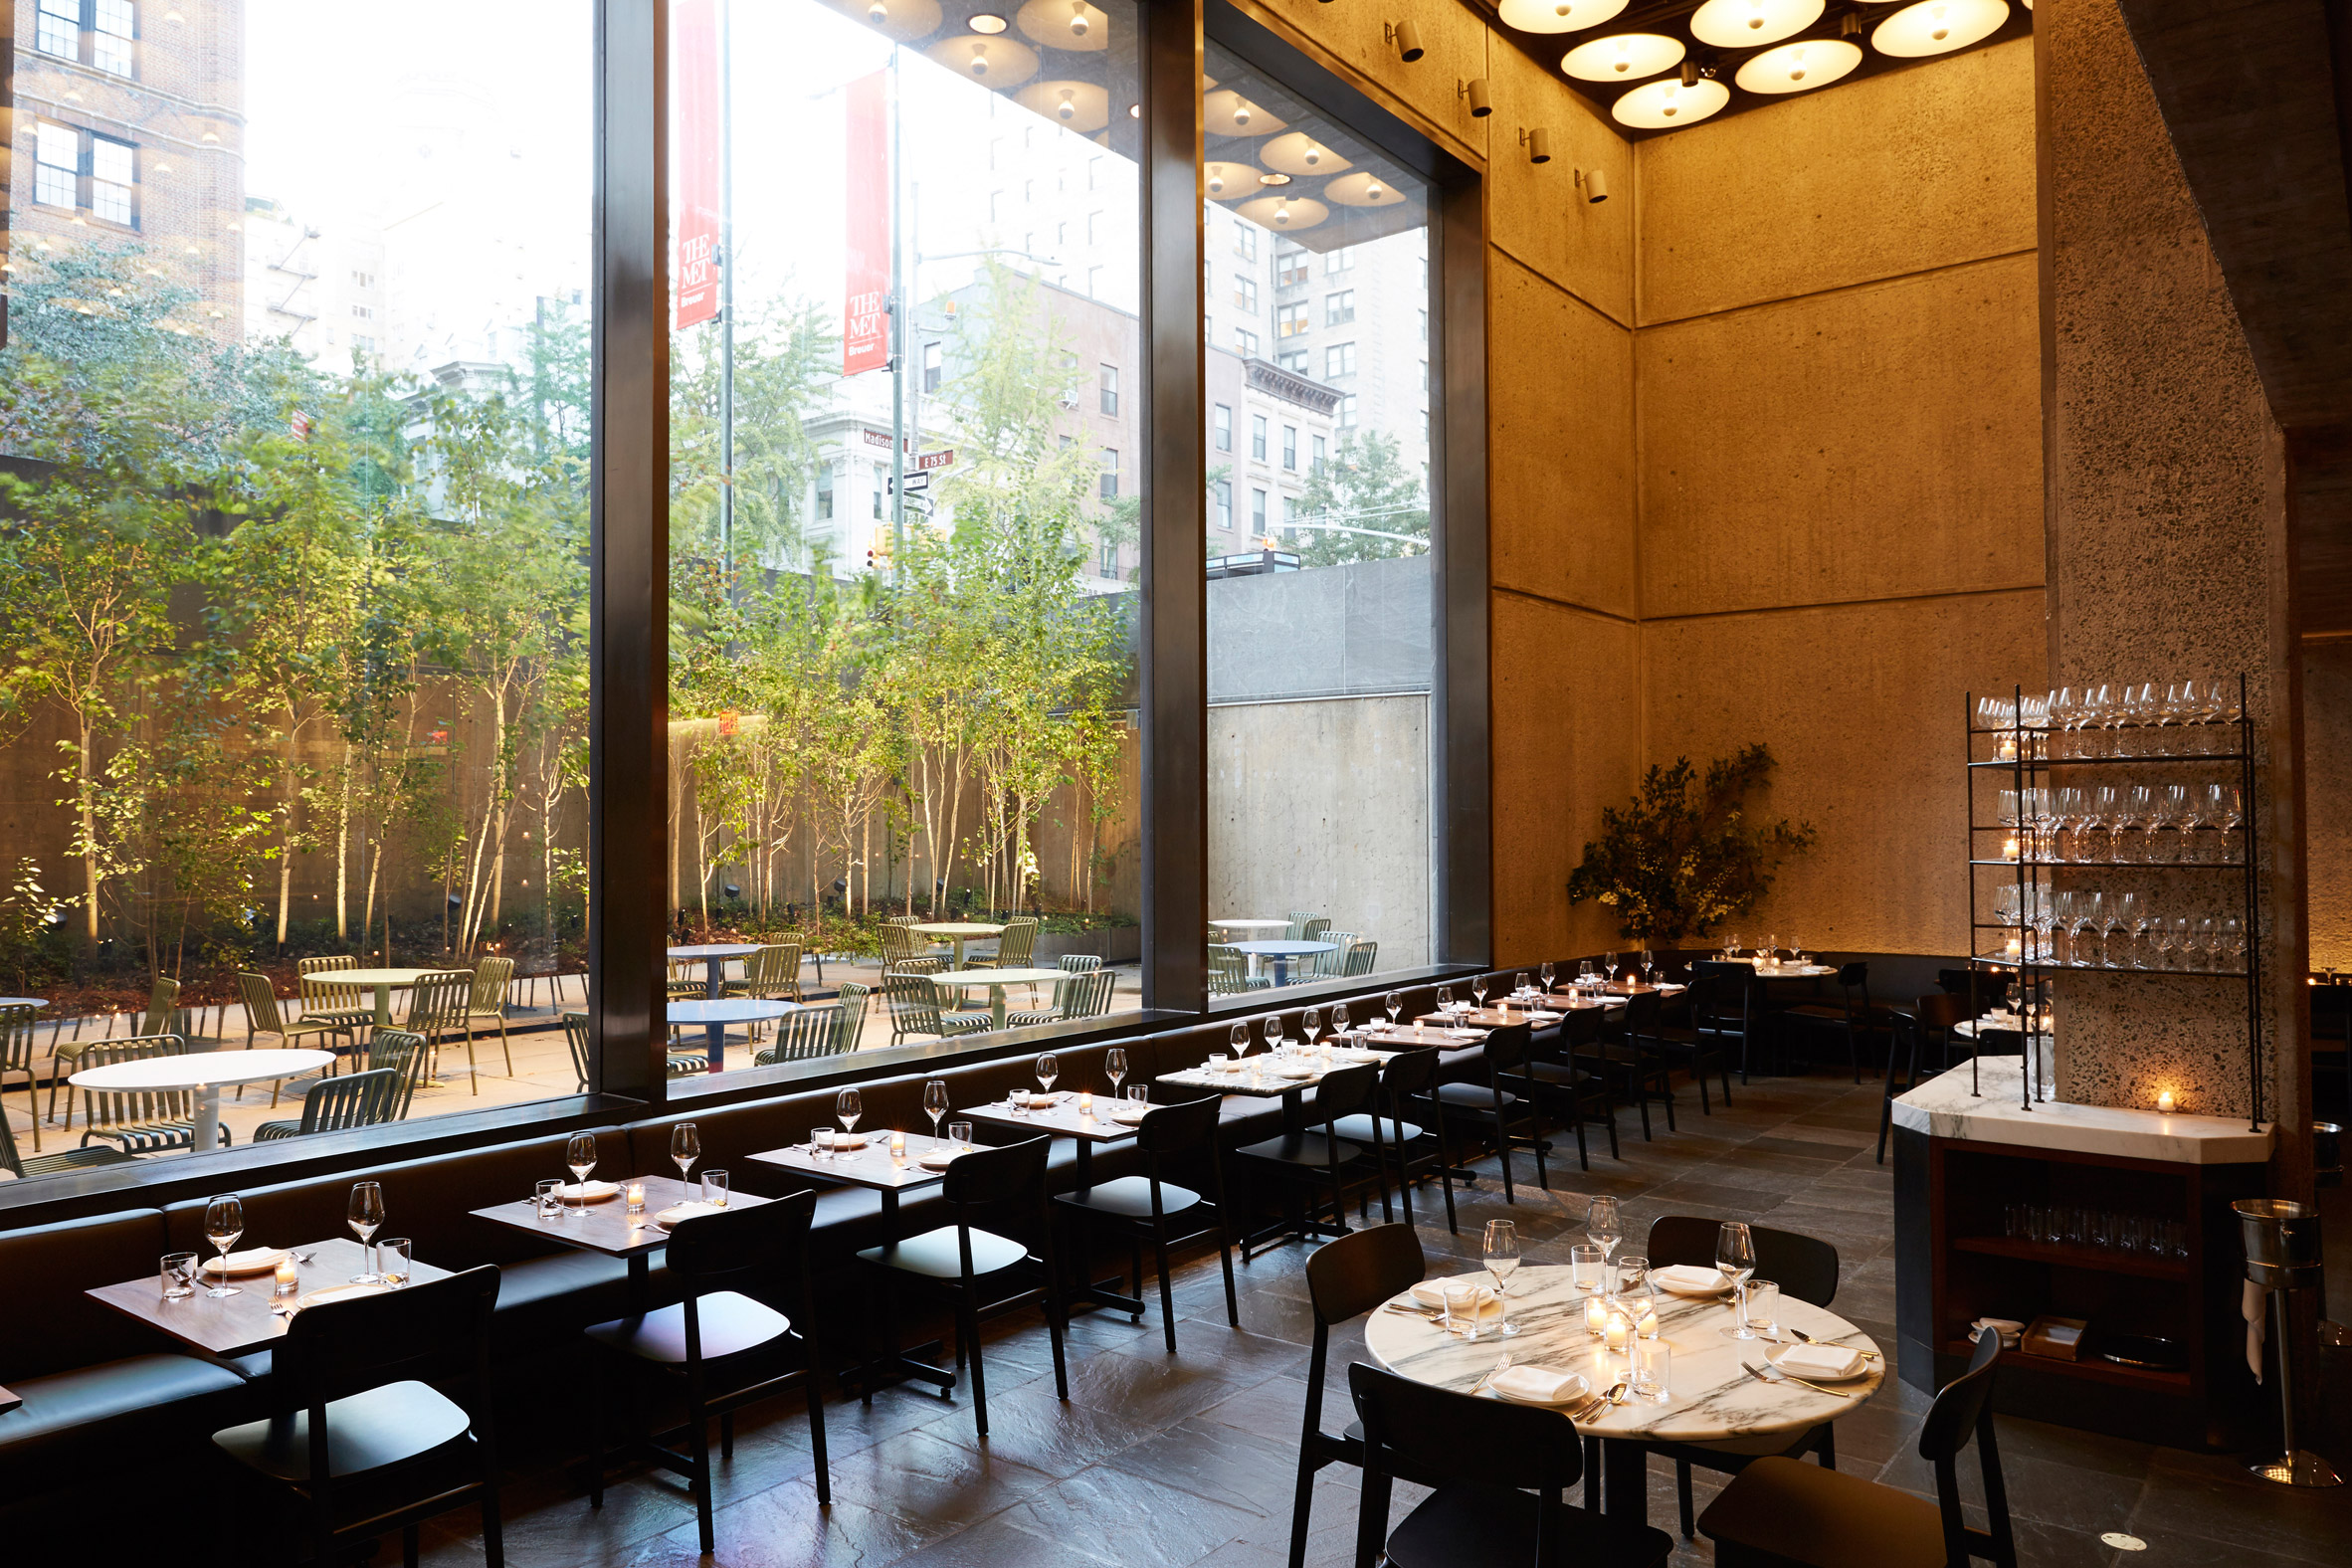 flora-bar-cafe-restaurant-interior-design-beyer-blinder-belle-met-breuer-new-york-city-usa_dezeen_2364_col_6